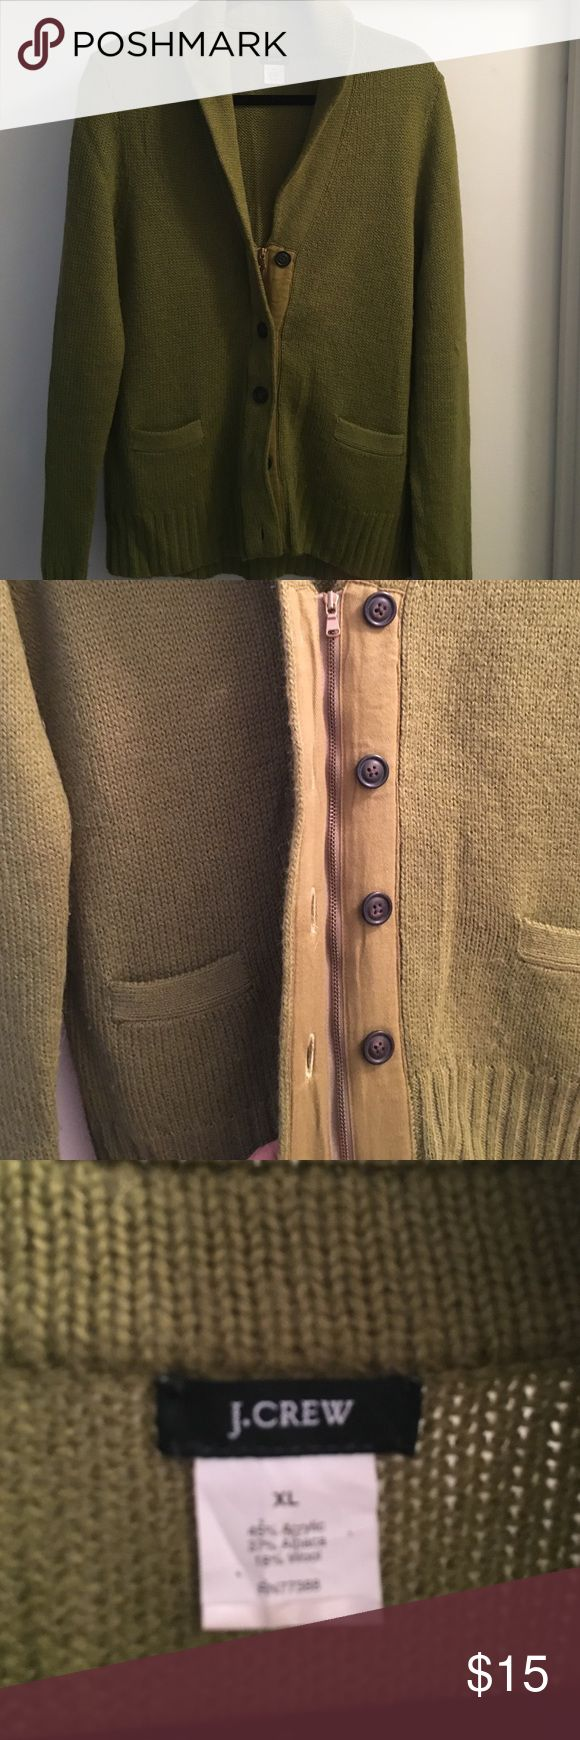 J.Crew Ladies Sweater Sz XL in green Beautiful J.Crew Ladies Shawl Collar Cardigan.  Has a zip front closure and you can either button all the way up or button a few and show the zipper!  2 pockets .  Gently used but in great condition!!! J. Crew Sweaters Cardigans